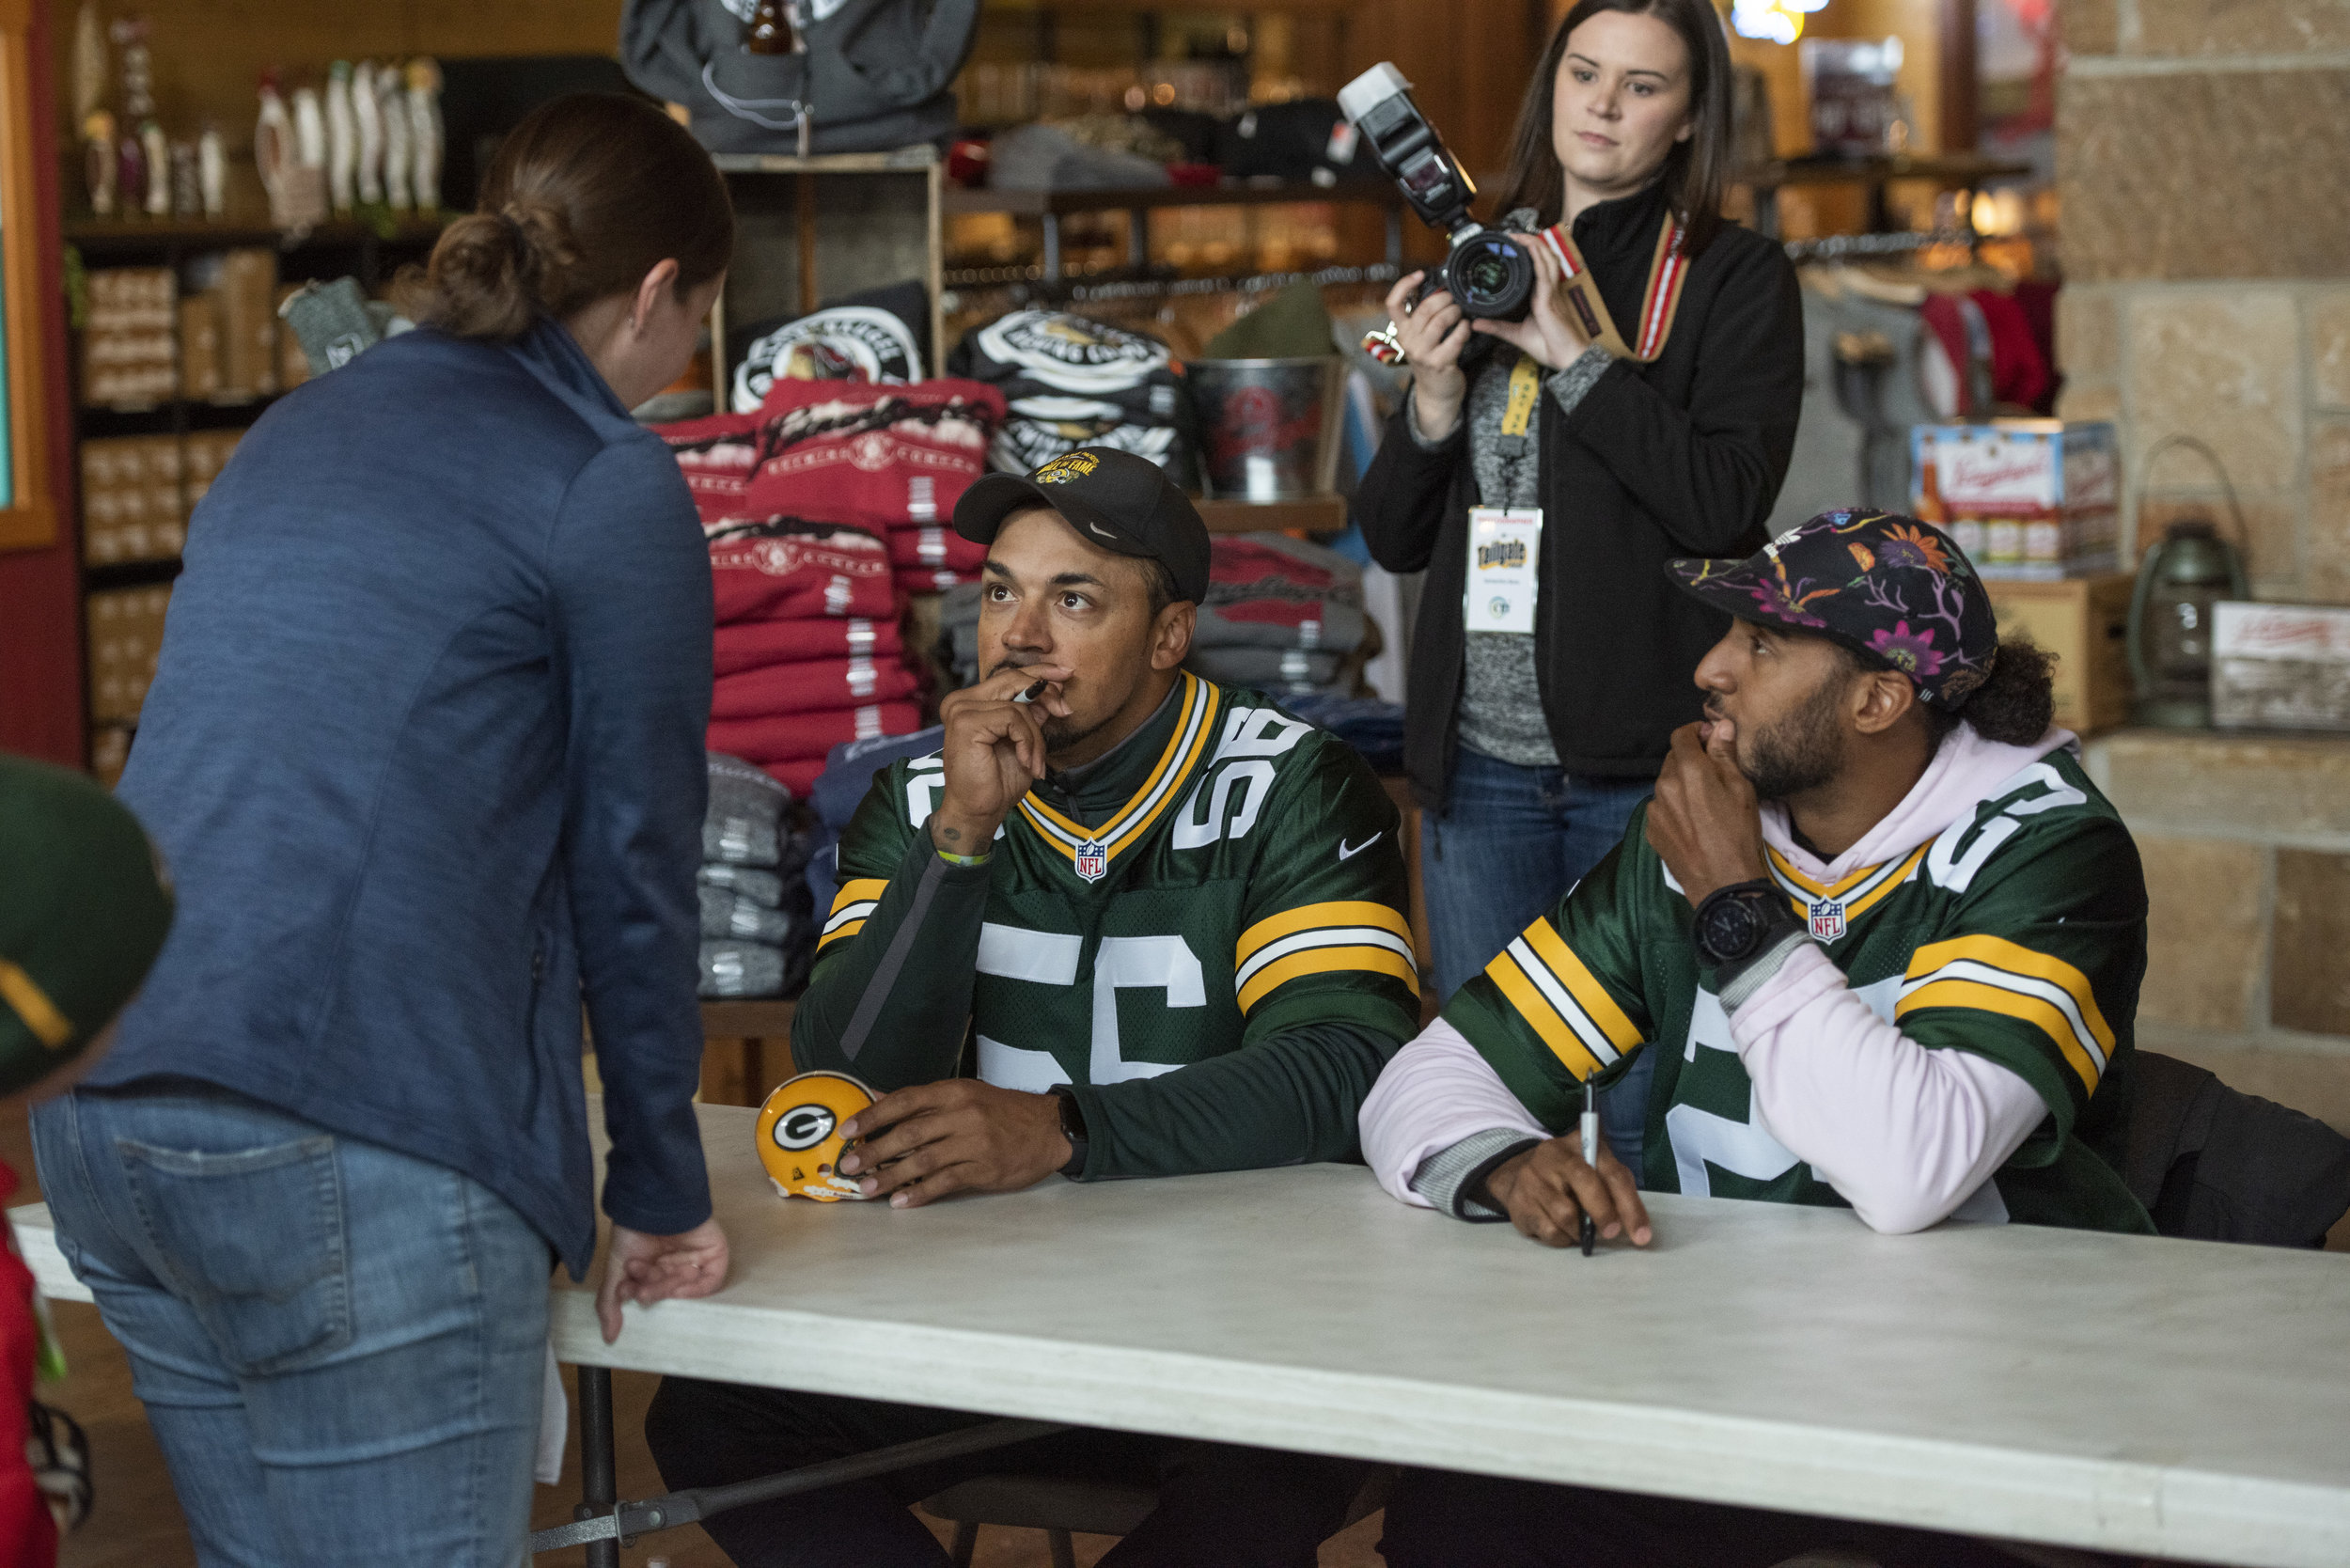 Packer_Tailgate_Tour_4.JPG